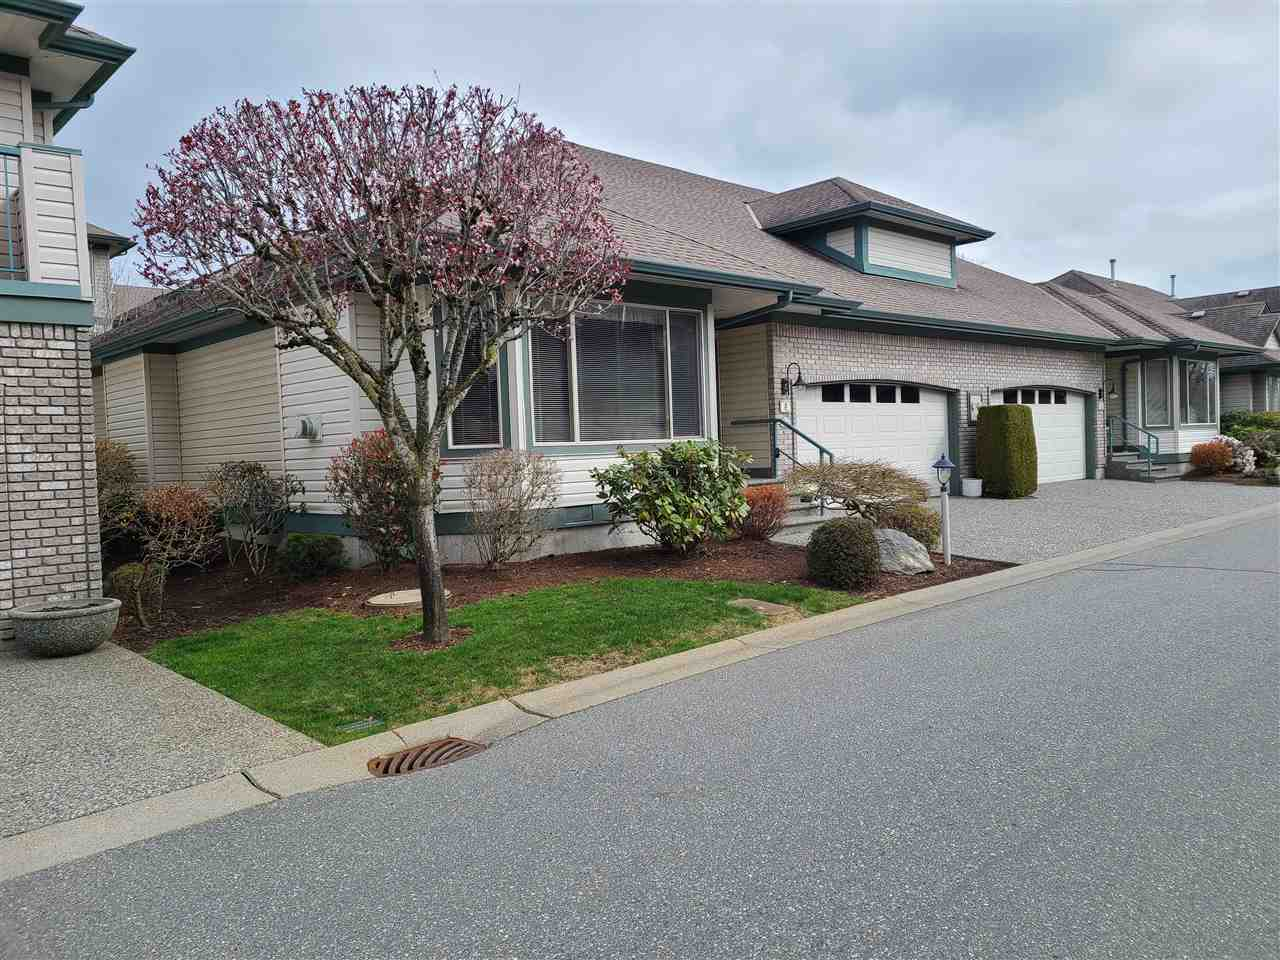 5 31517 SPUR AVENUE - Abbotsford West Townhouse for sale, 2 Bedrooms (R2559389) - #1